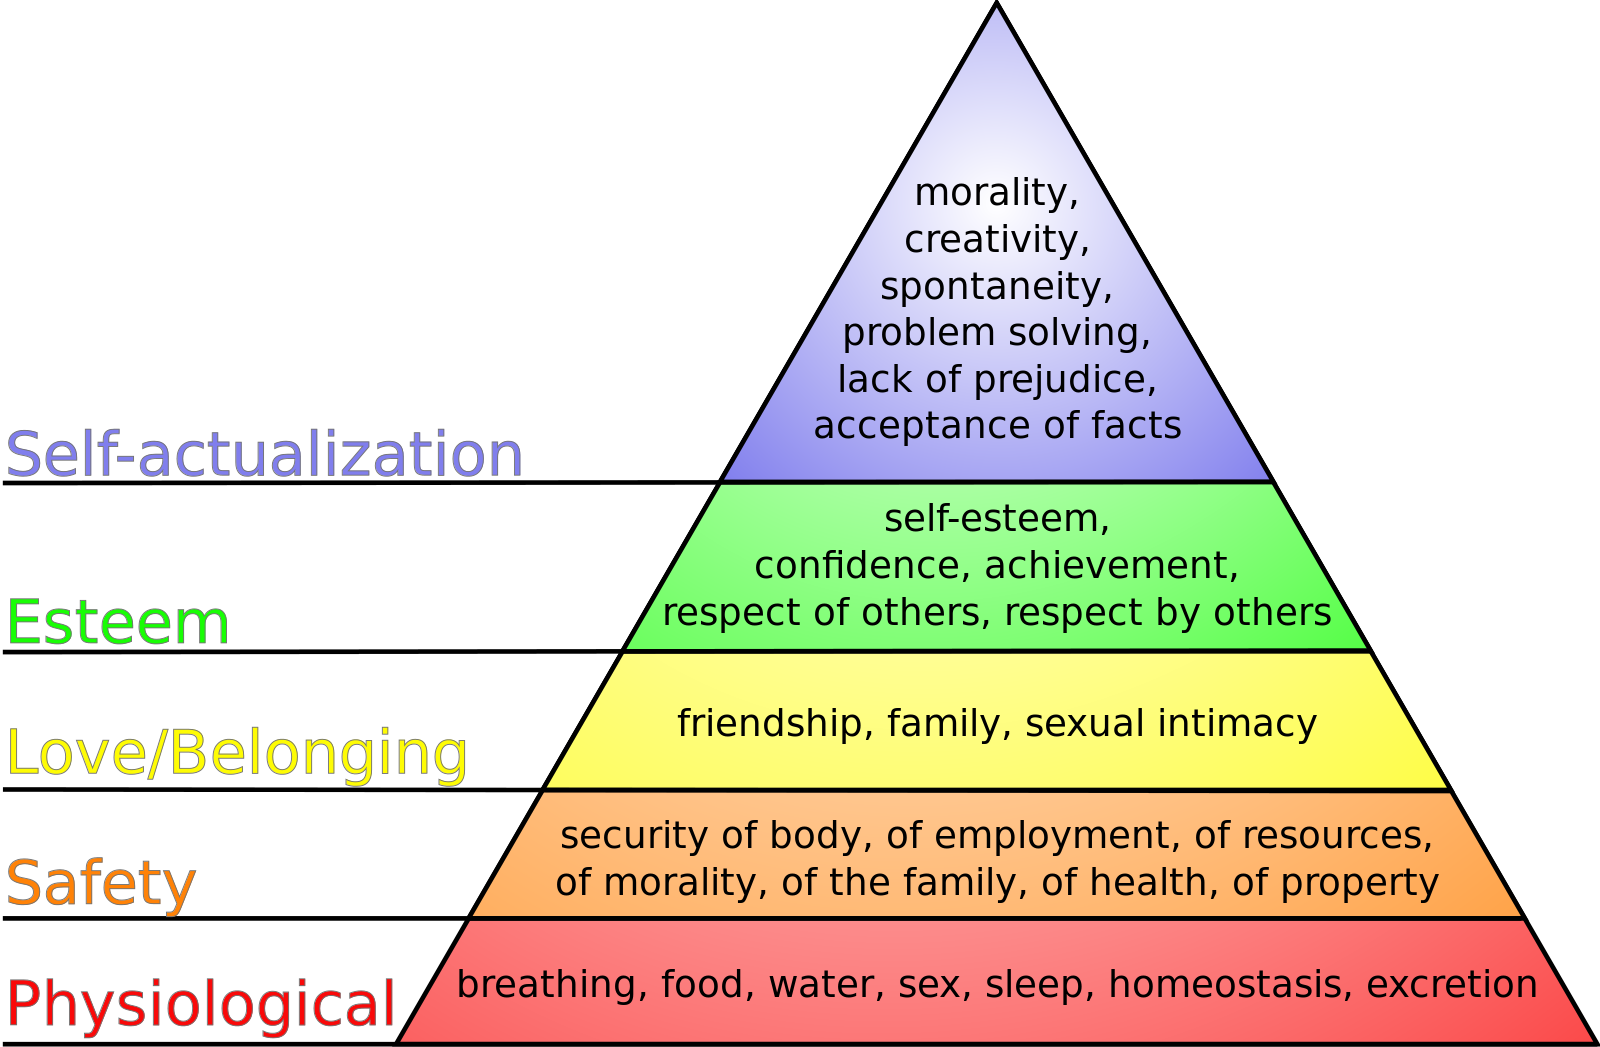 ... ://commons.wikimedia.org/wiki/File:Maslow's_hierarchy_of_needs.svg